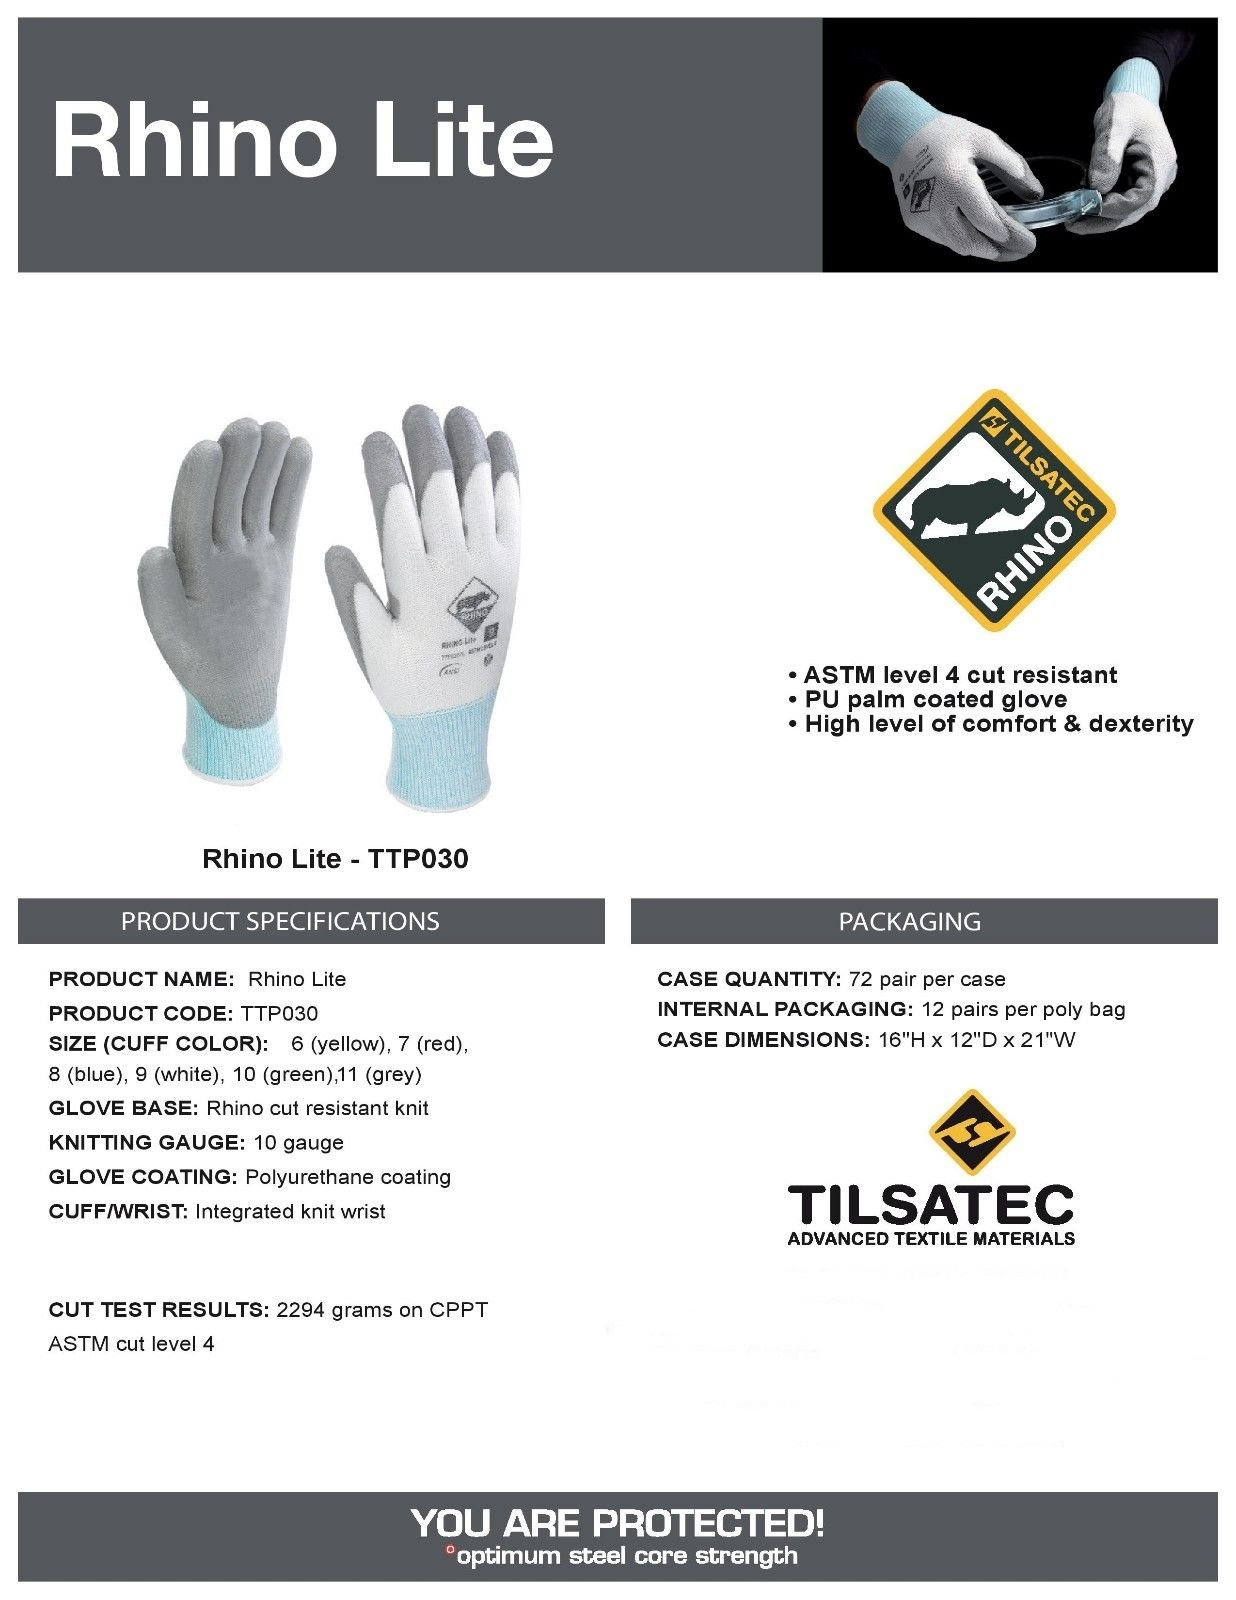 Tilsatec TTP030 Rhino Lite Cut Resistant Gloves, Grey Polyurethane Coated Palm and Fingers, Size: LARGE, 12 Pair by Rhino Lite (Image #1)